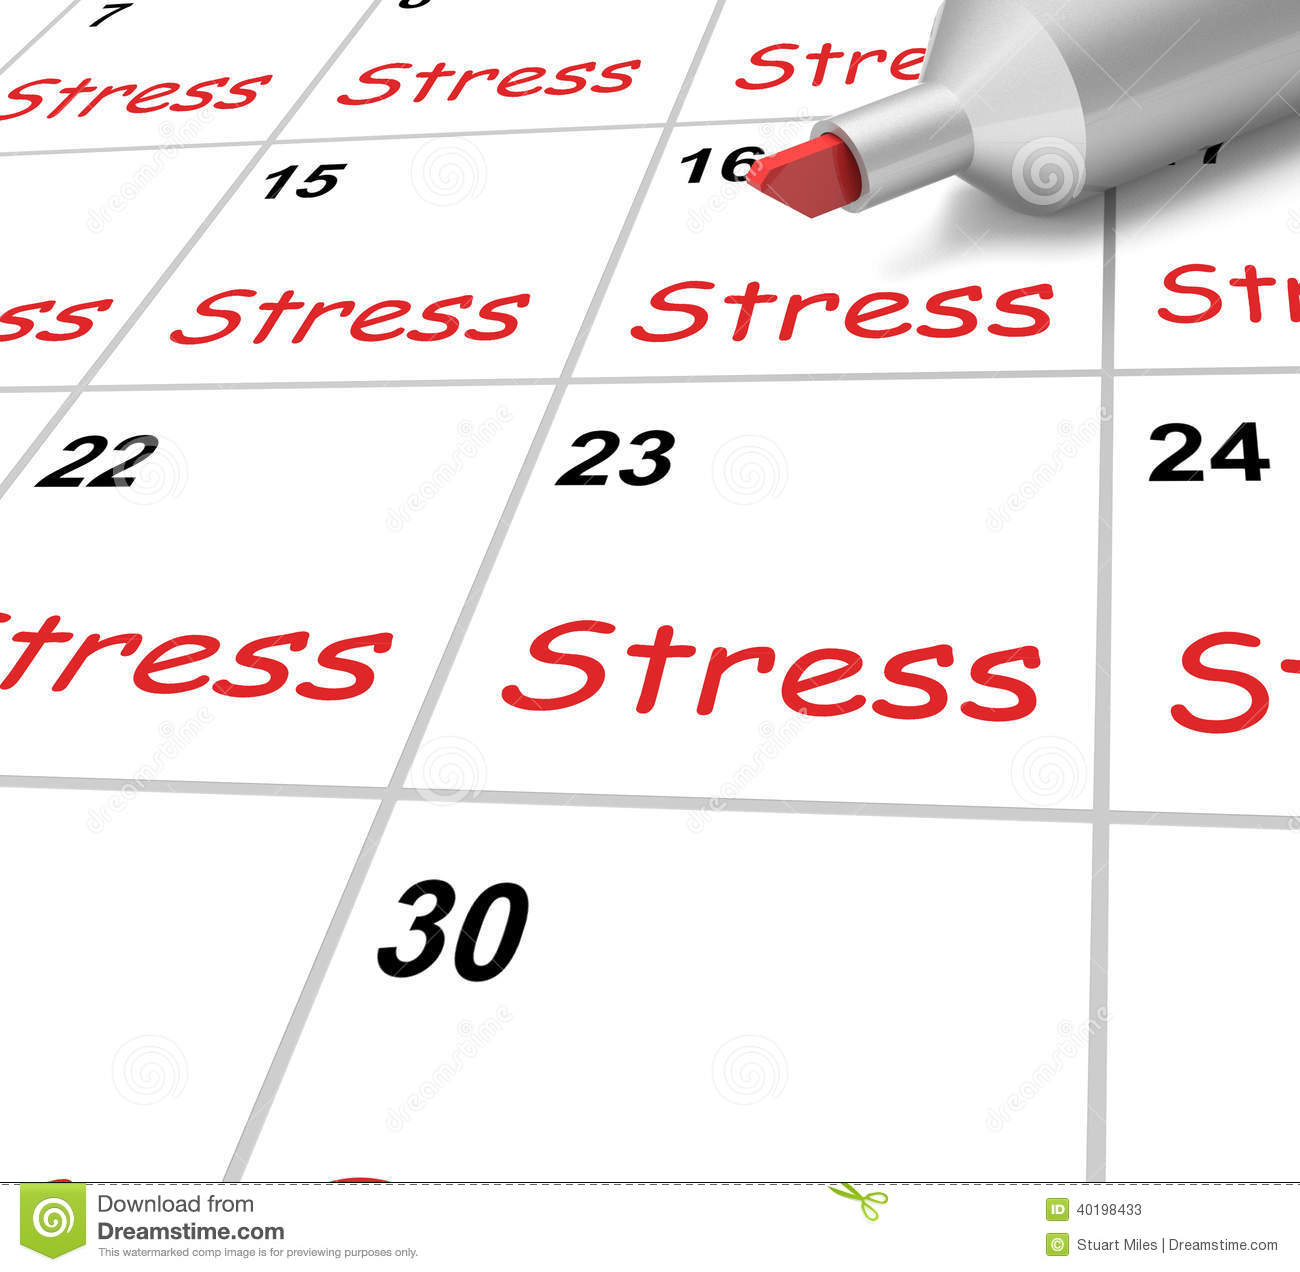 Short essay about stress management